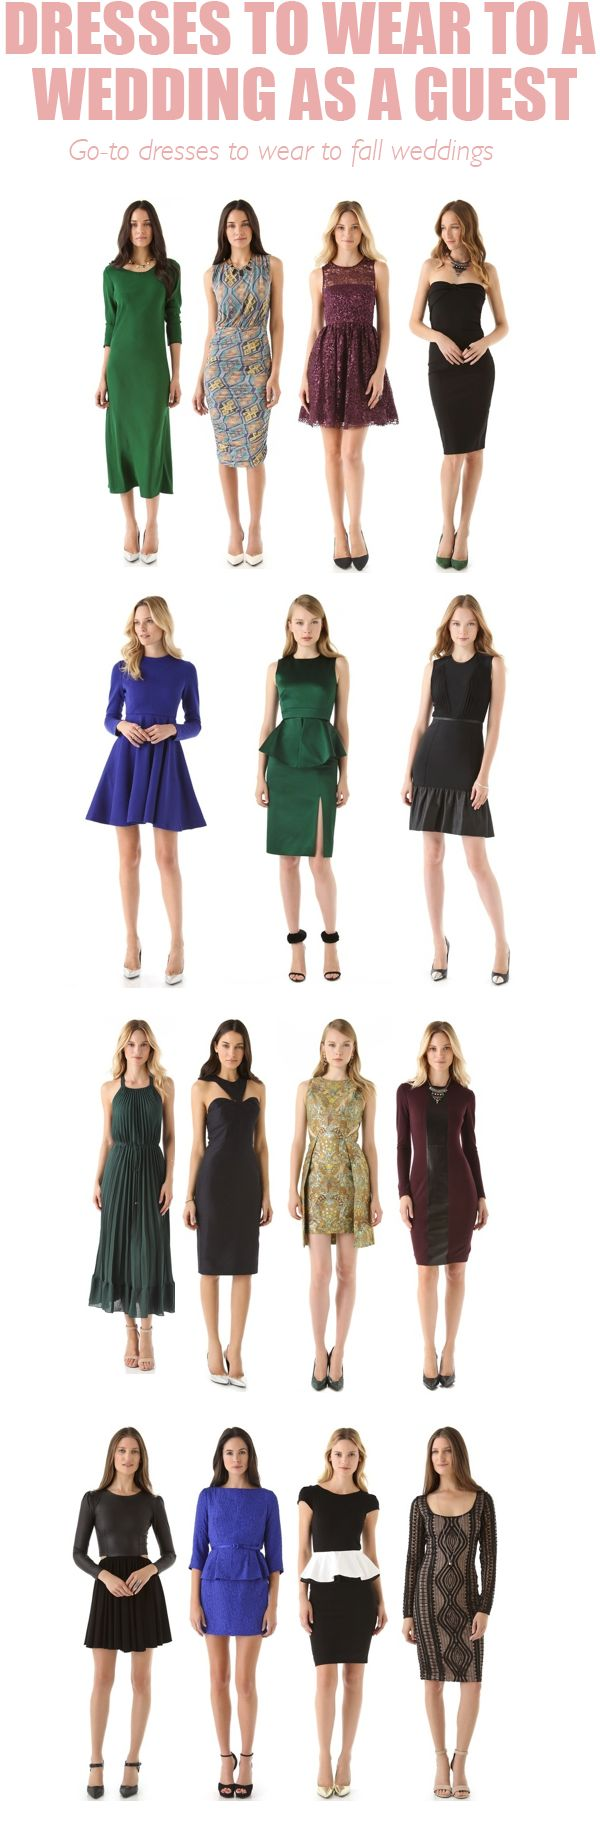 Here are some tips about how to channel your best look for this fall's wedding season. By the way, some of this dresses can also work for holiday parties and a host of other events that you may have going on this season.